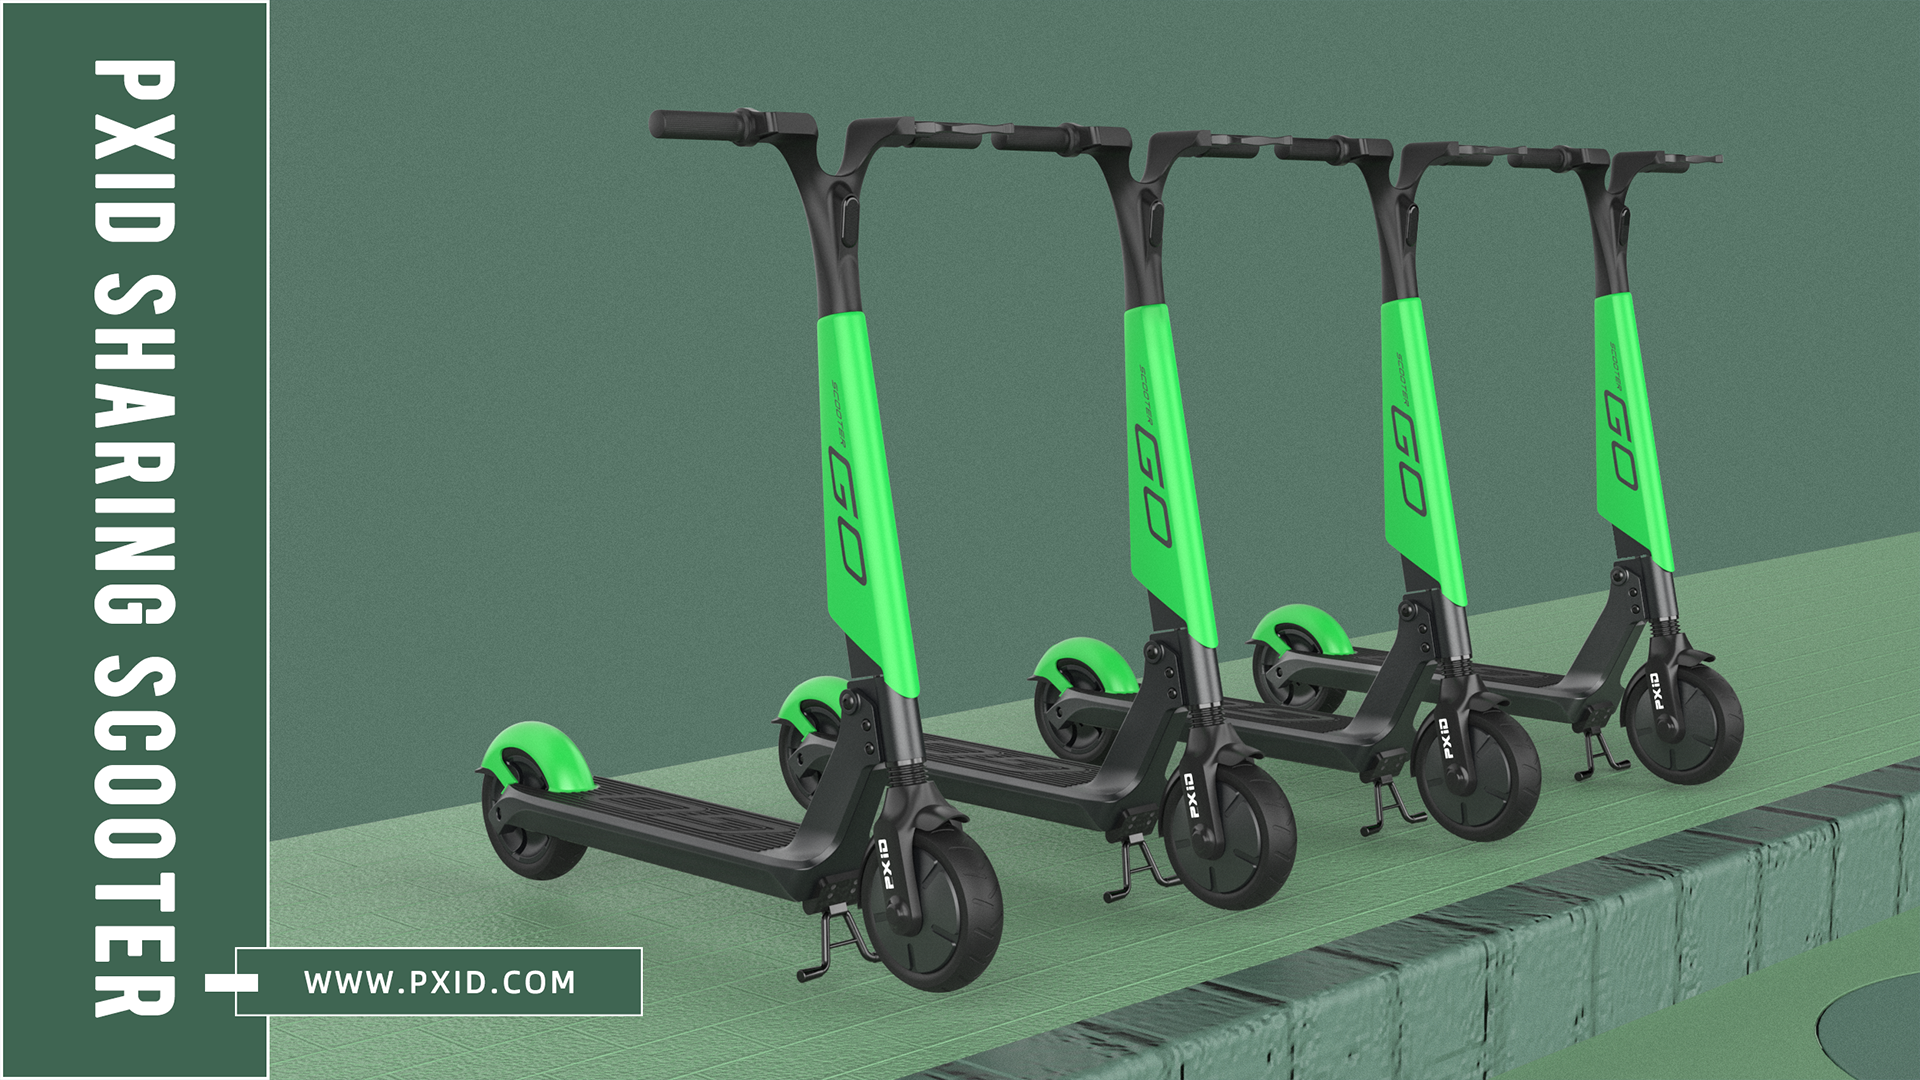 Fast wheel shared electric scooter design